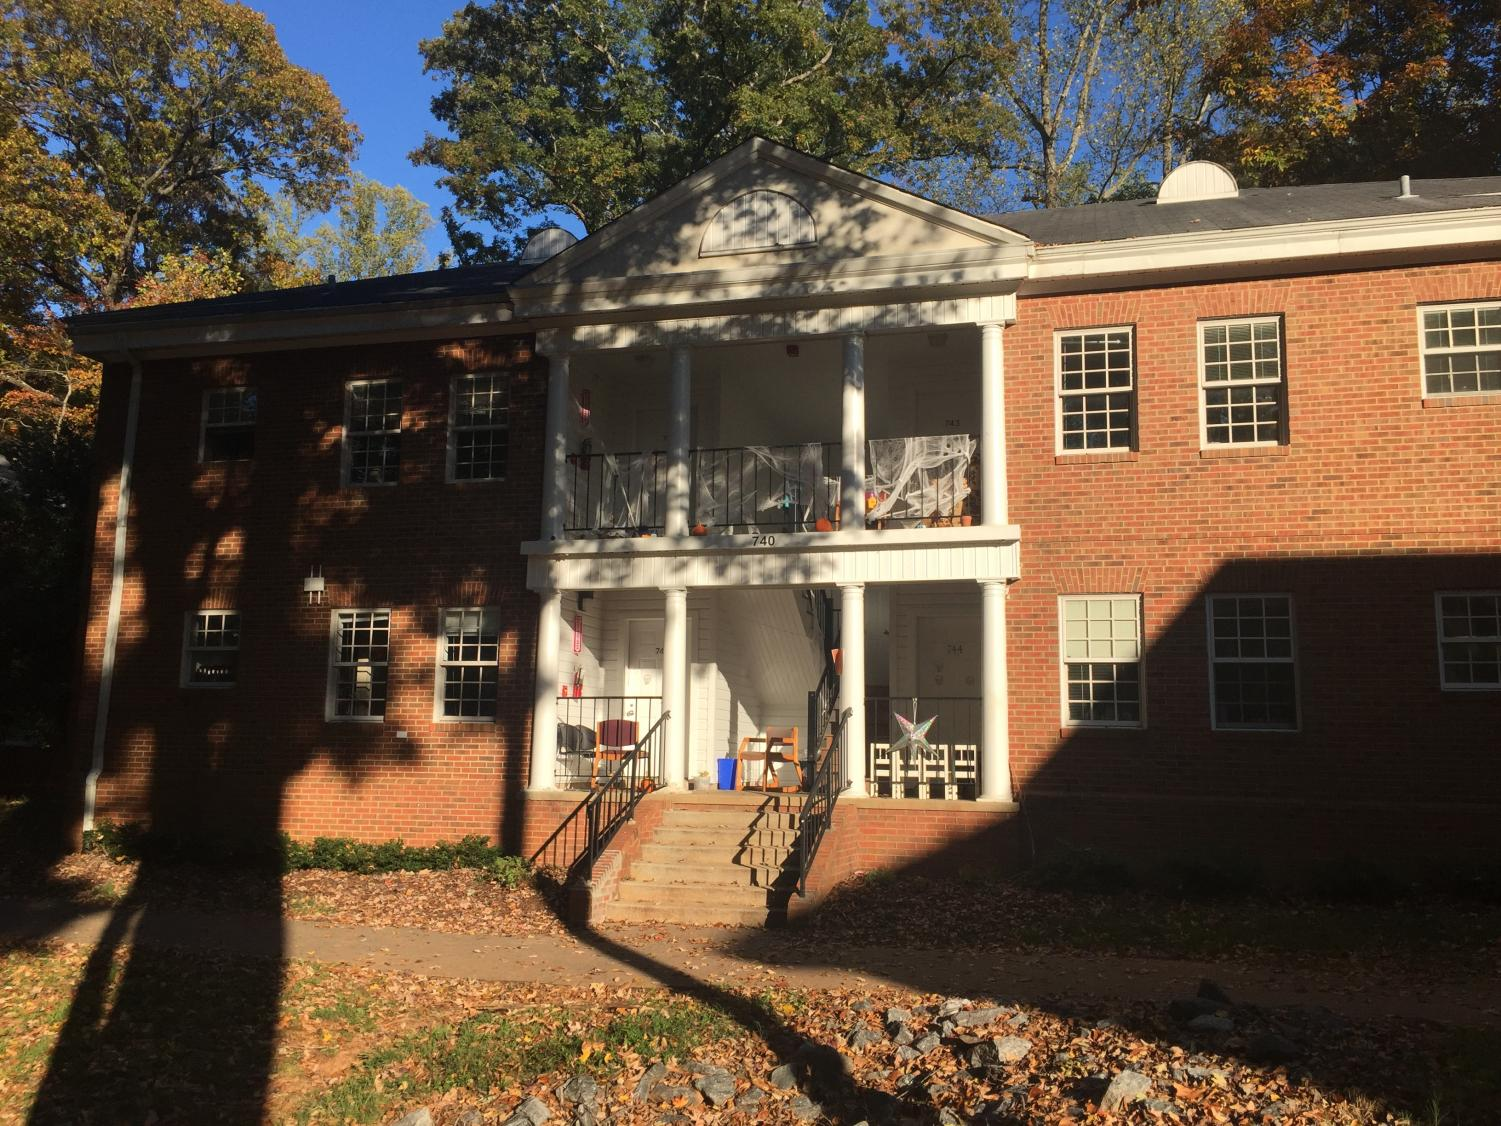 The co-op in the North Apartments were going to hold a Halloween party before being issued a Cease and Desist notice.